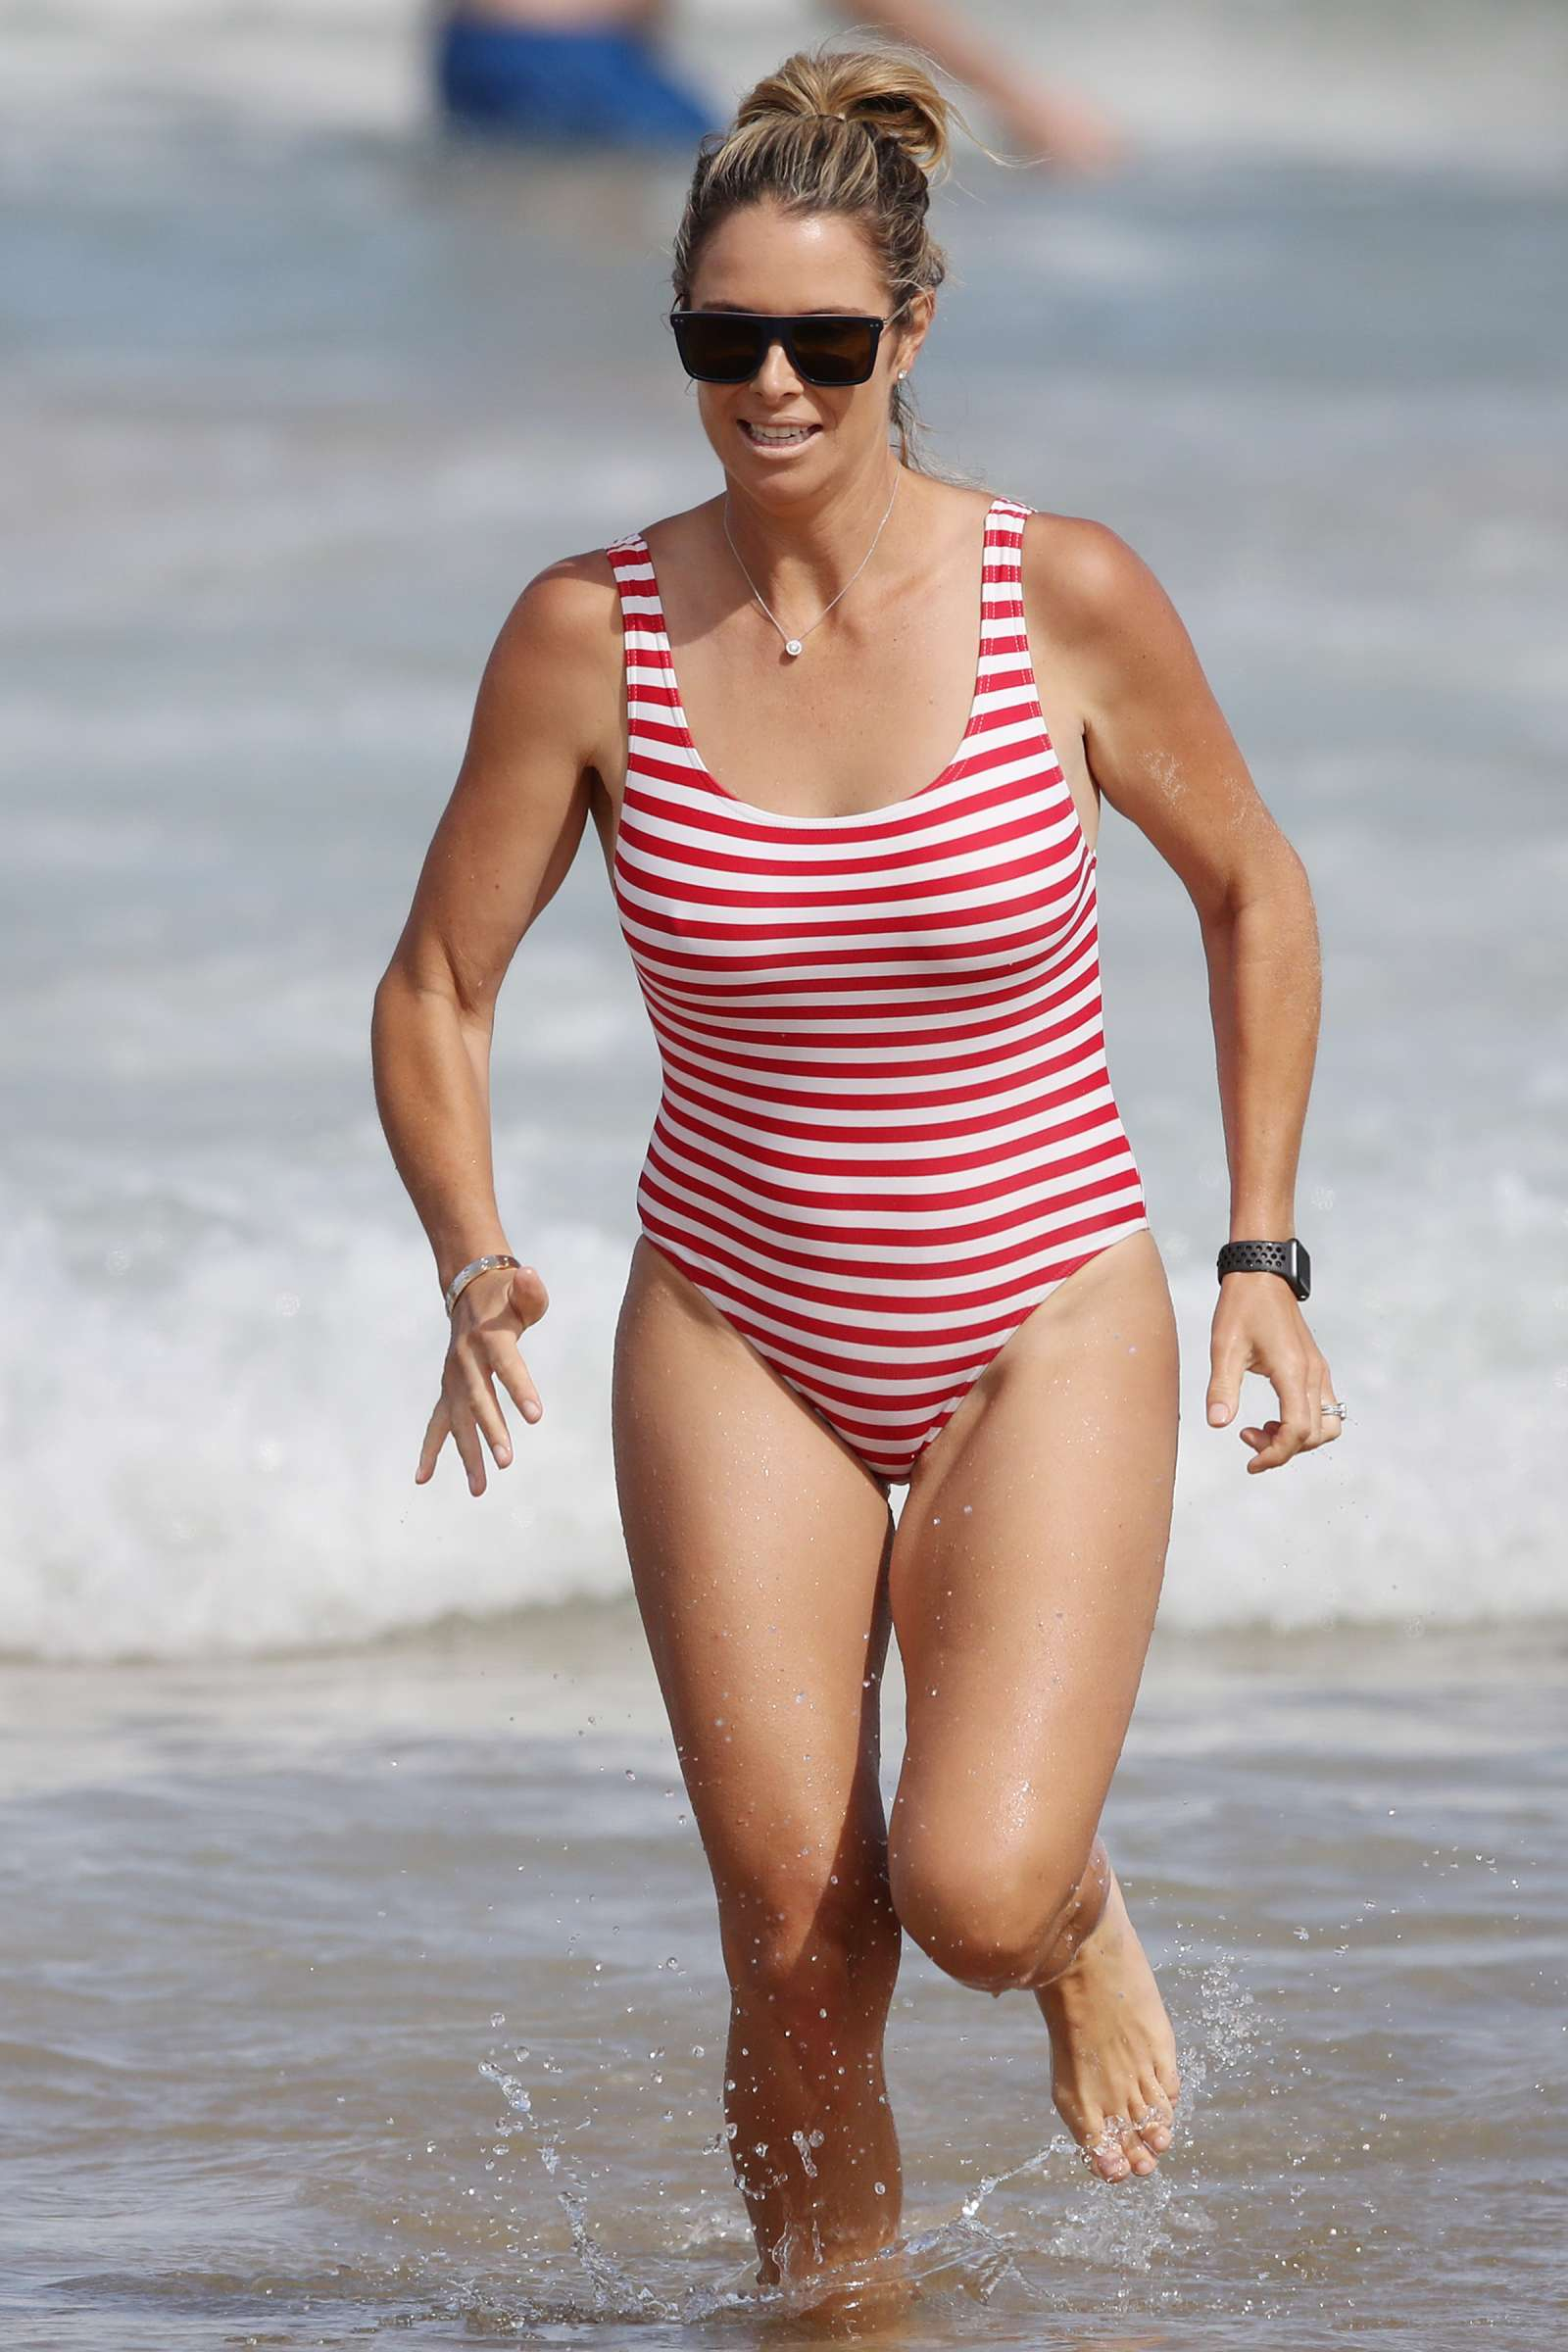 Candice Warner 2019 : Candice Warner in Red and White Swimsuit 2019 -11